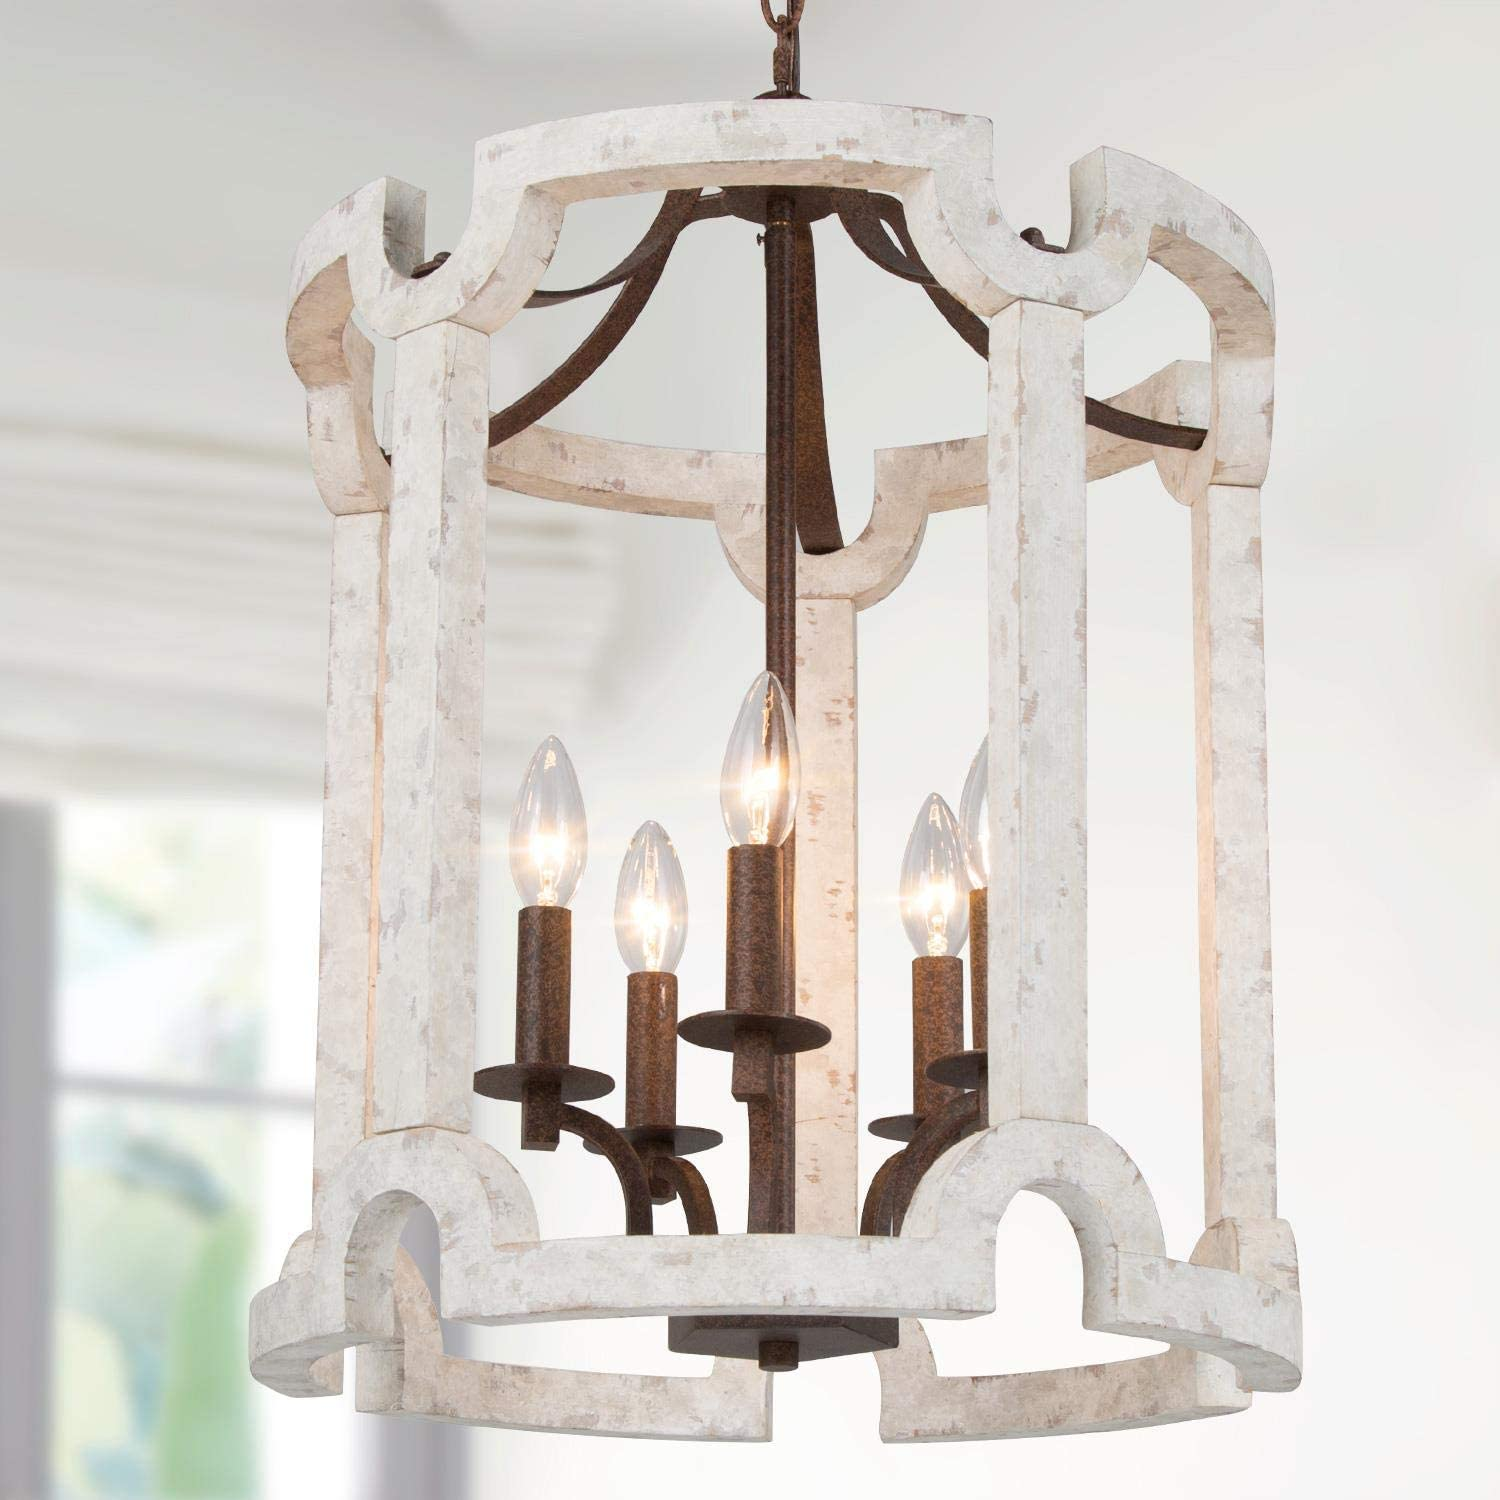 Surprise price LNC Farmhouse Chandelier for Wood Room Dining Ki 70% OFF Outlet